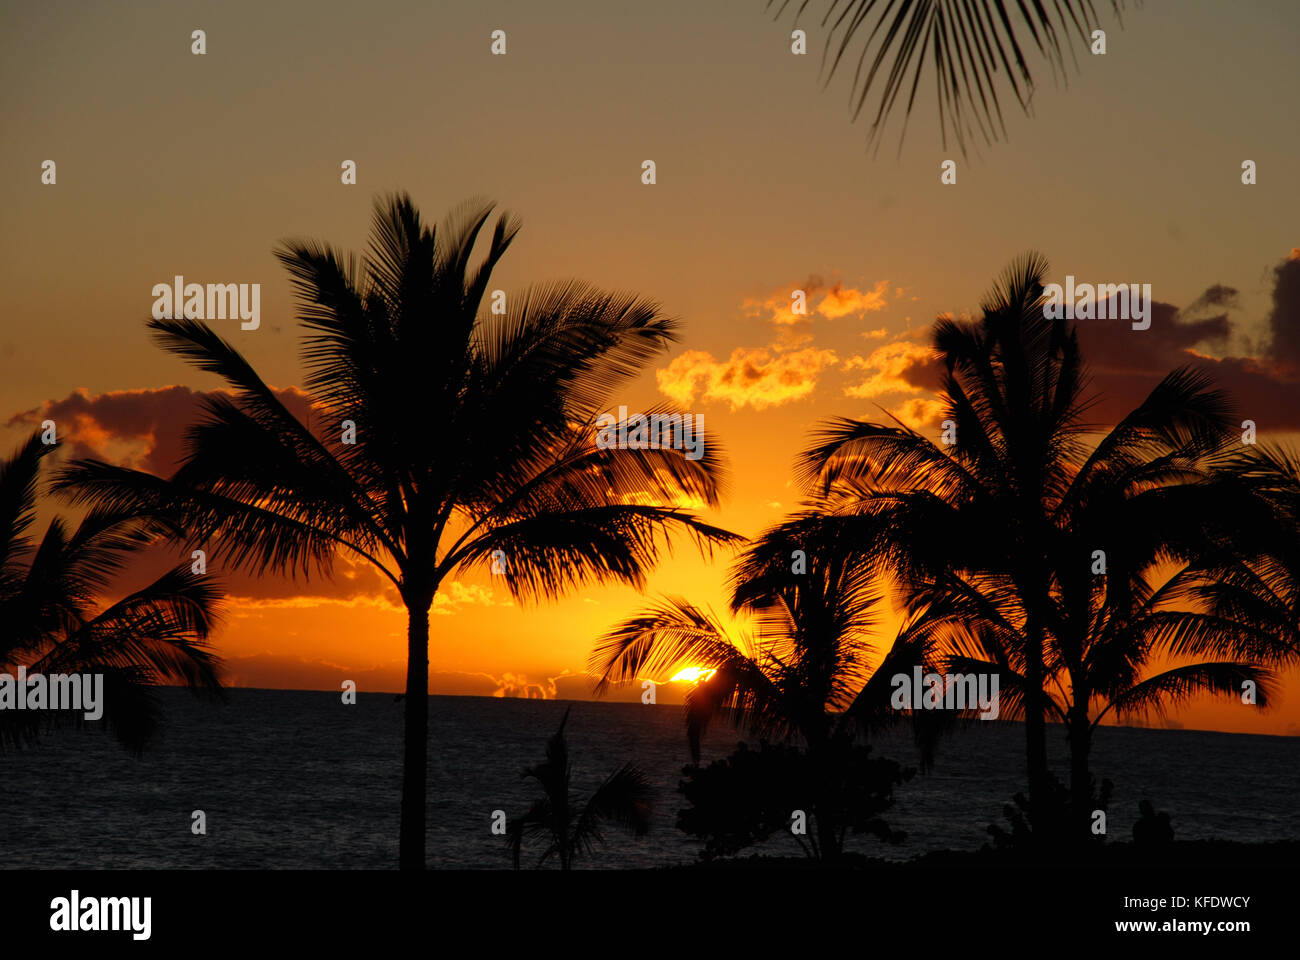 Palm trees silhouetted in the sunset - Ko Olina Resort on Oahu, Hawaii - Stock Image